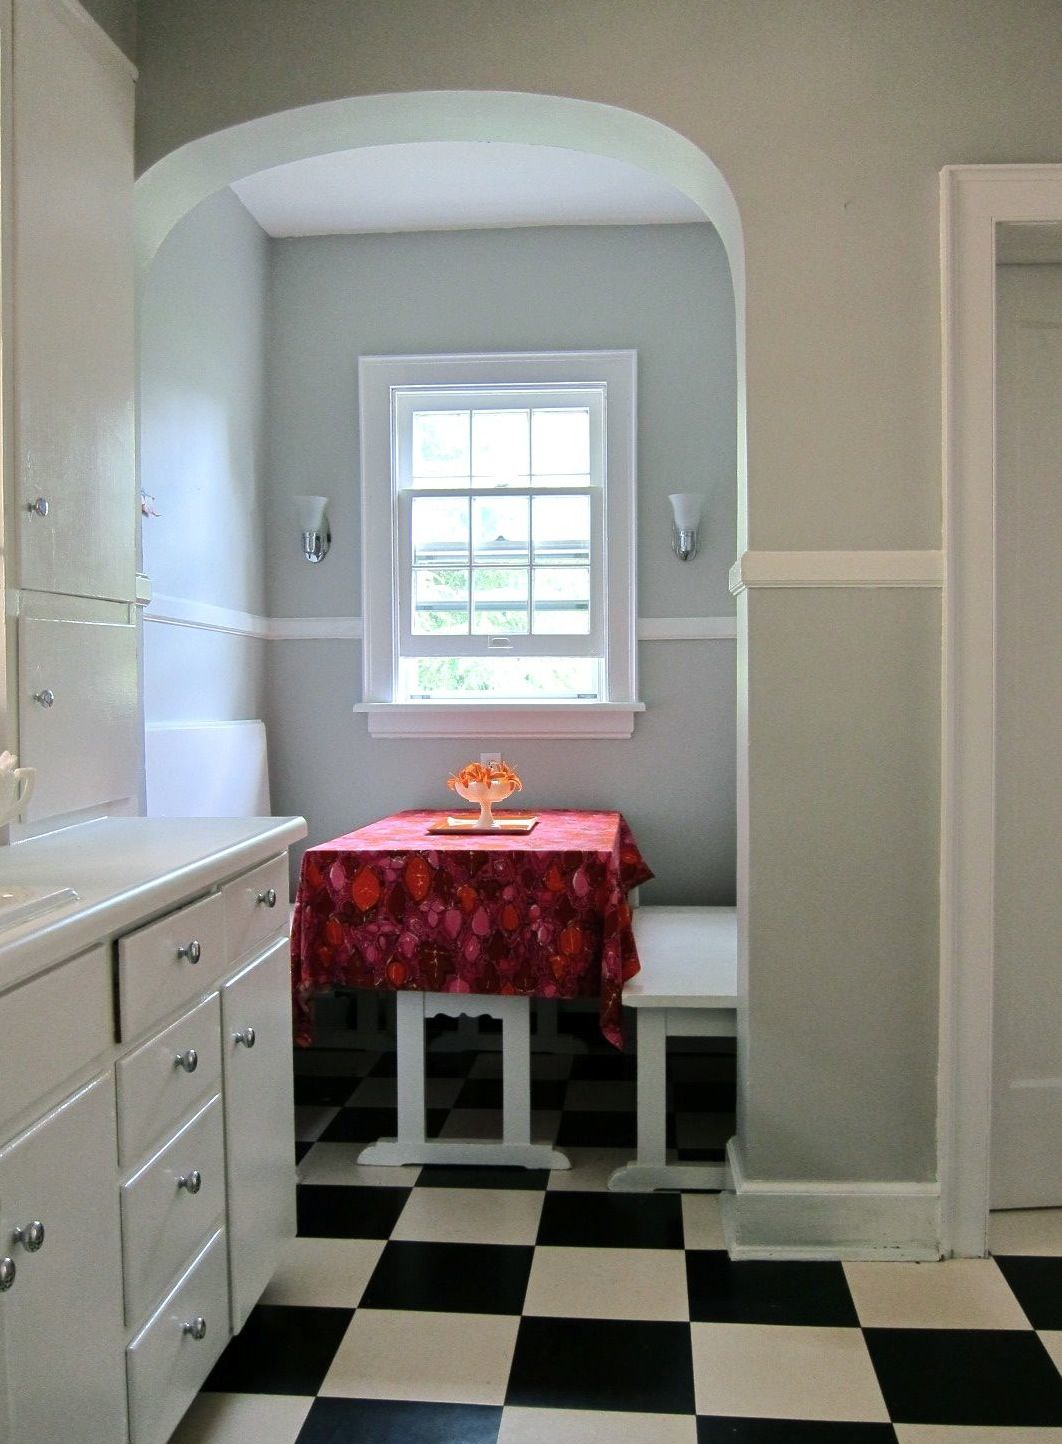 Paint silver chain by benjamin moore